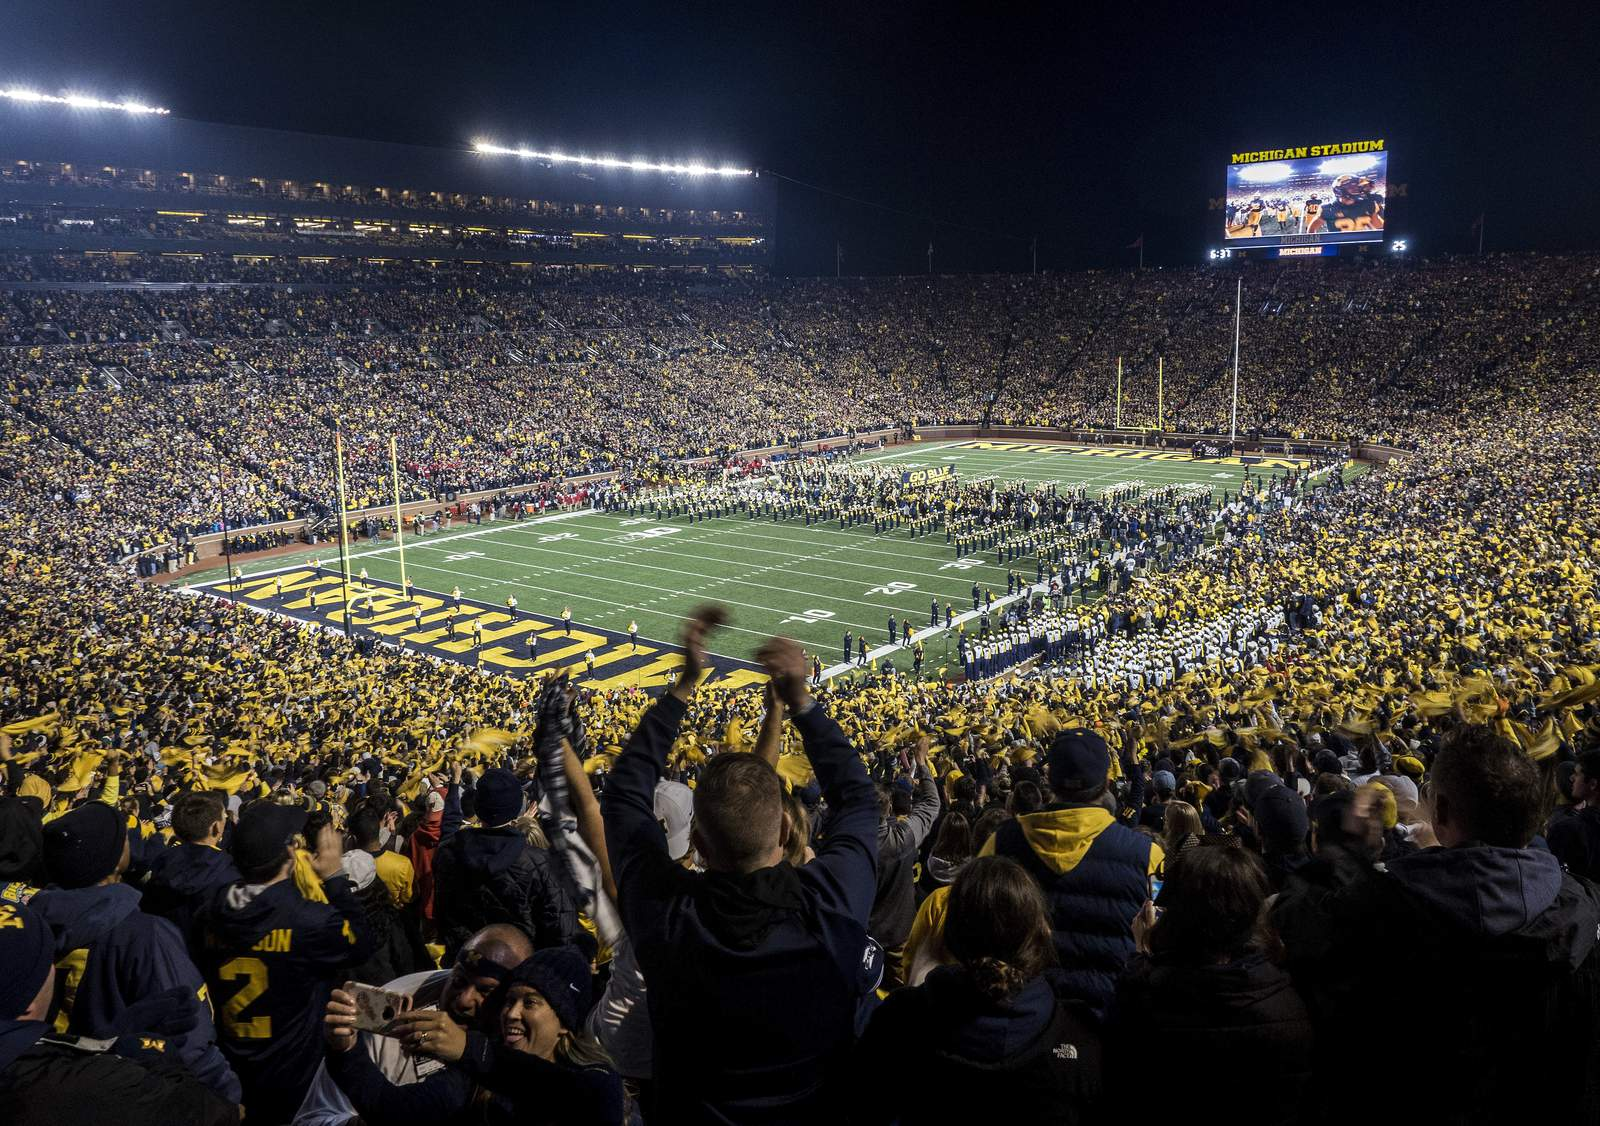 What Governor Said About Fans Attending Michigan Michigan State Football Games This Year